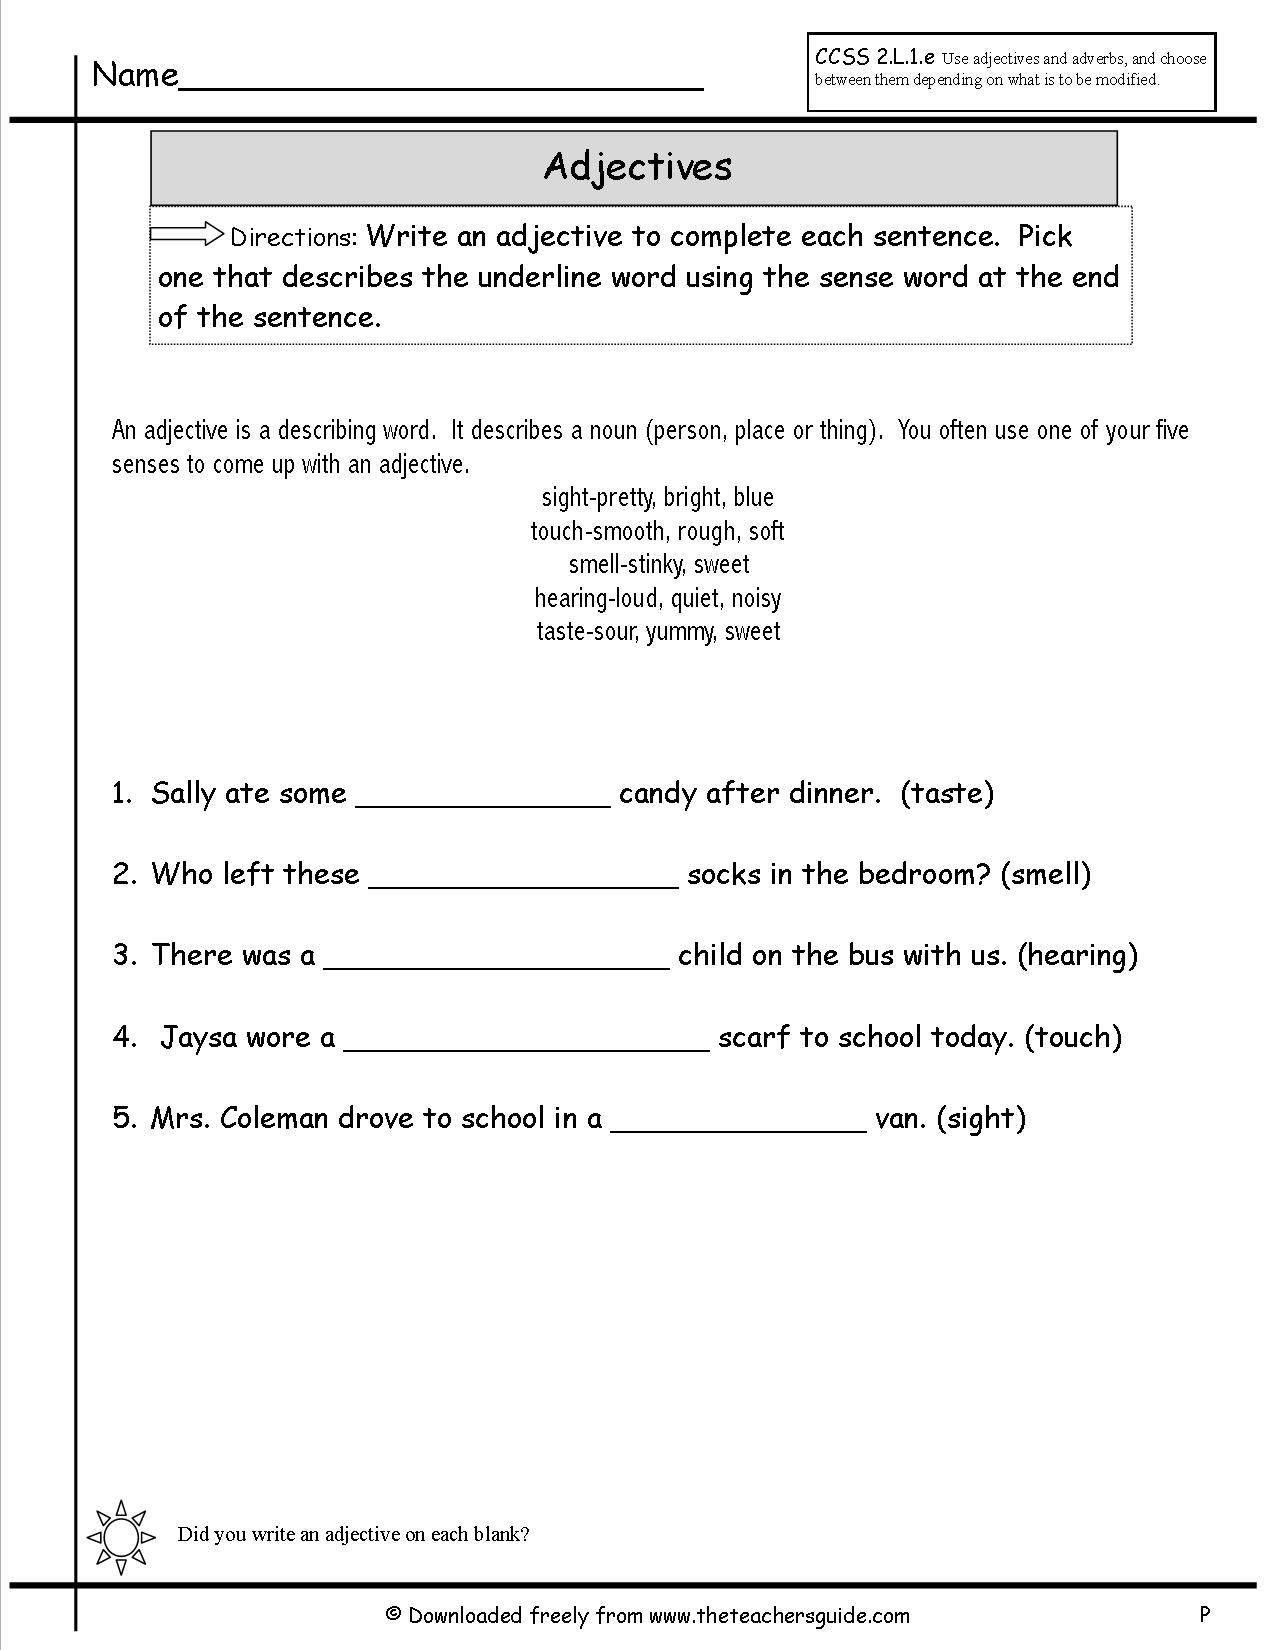 18 Best Images Of Journey To Careers Worksheets